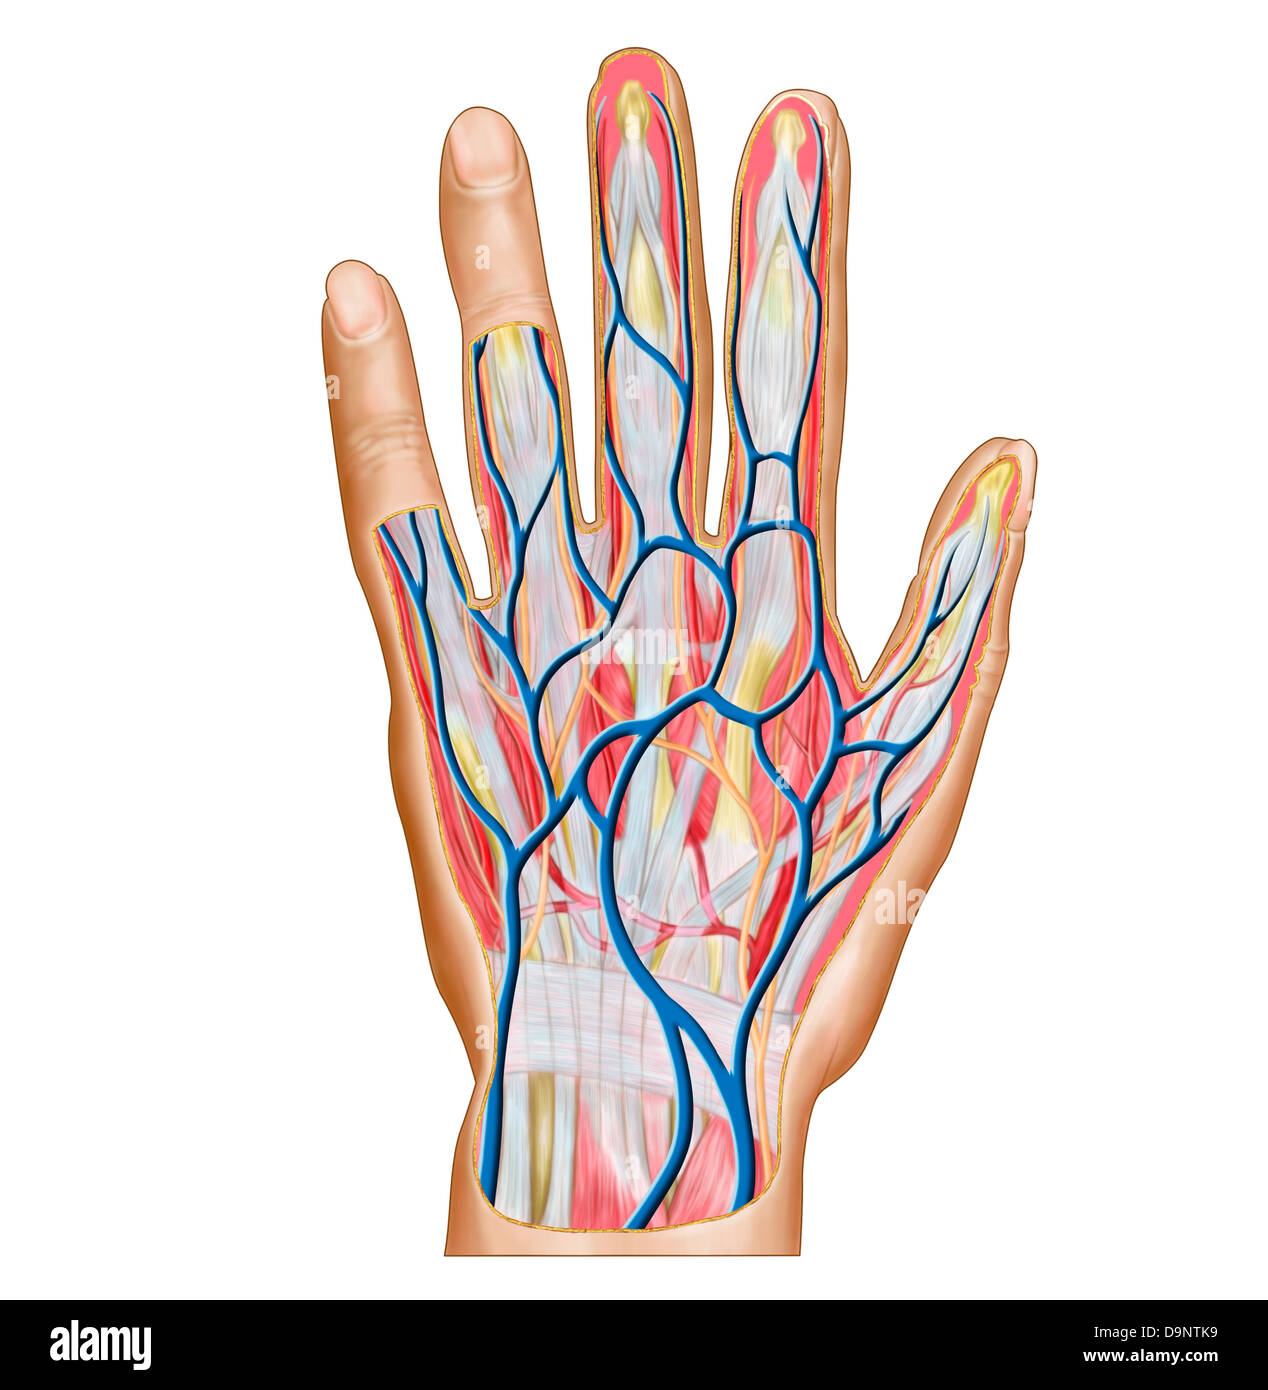 Anatomy Of Back Of Human Hand Stock Photo 57643357 Alamy